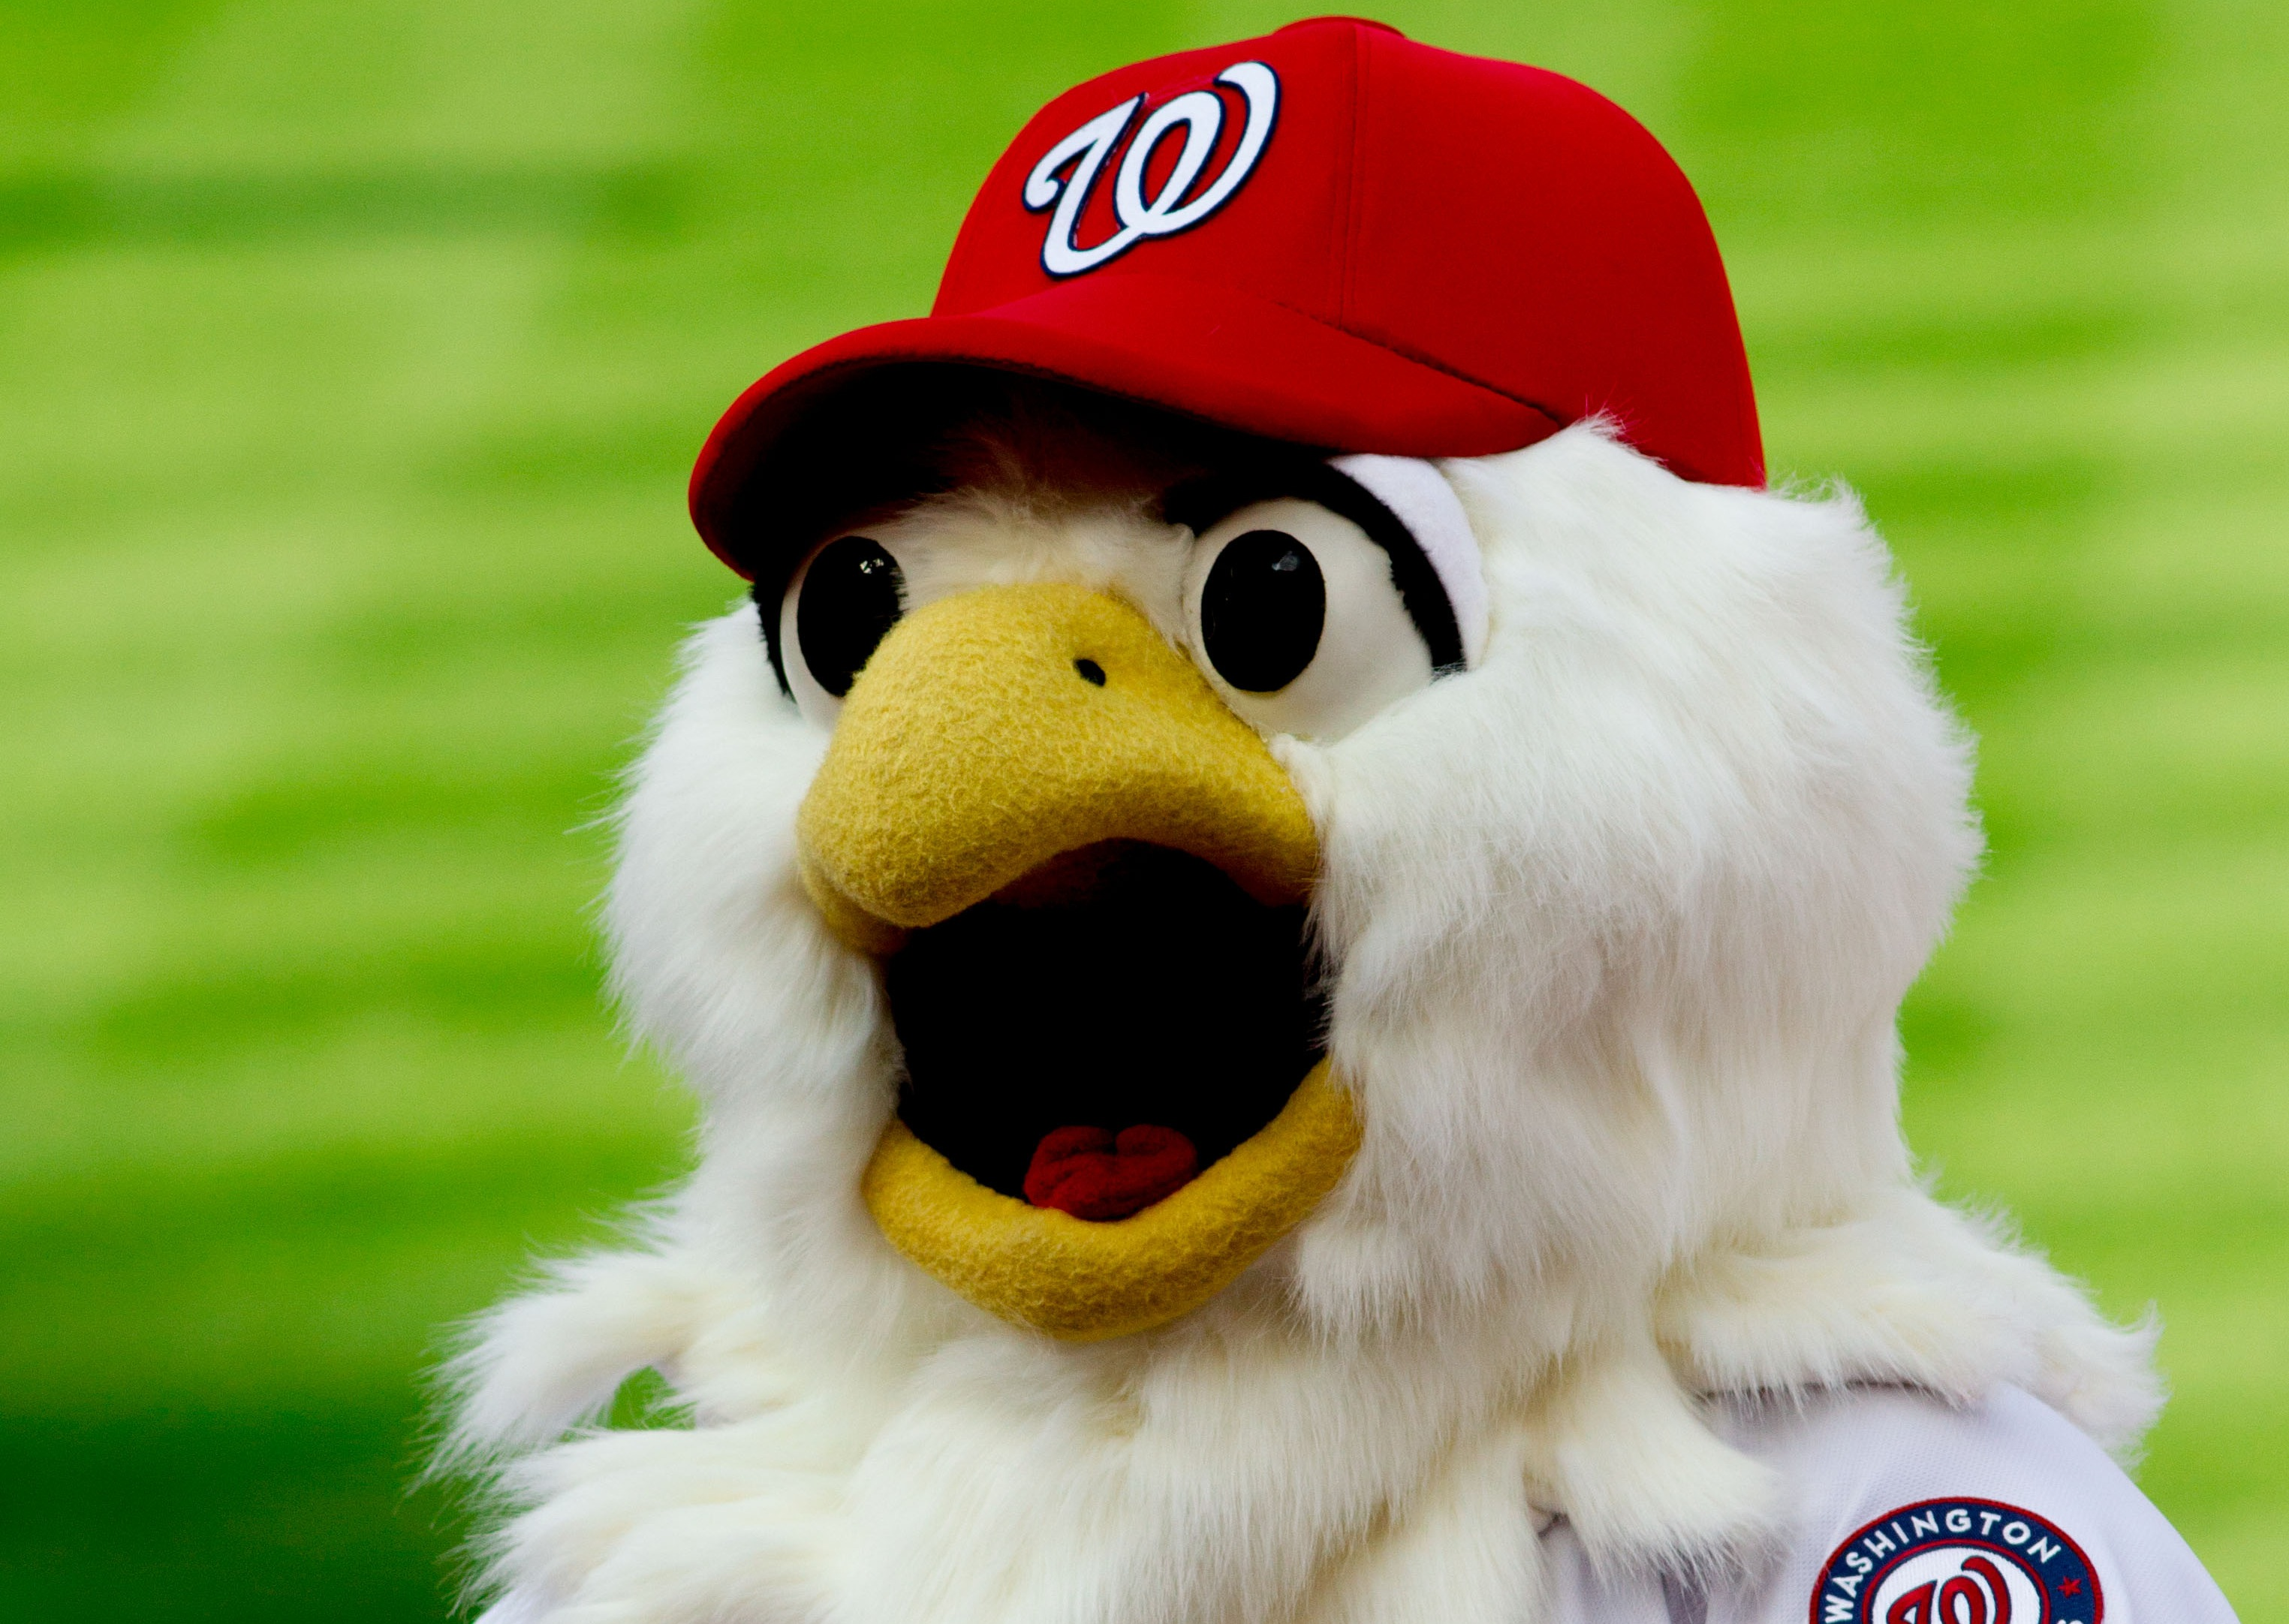 11-screech-nationals-mascot-disturbing-mlb-mascots